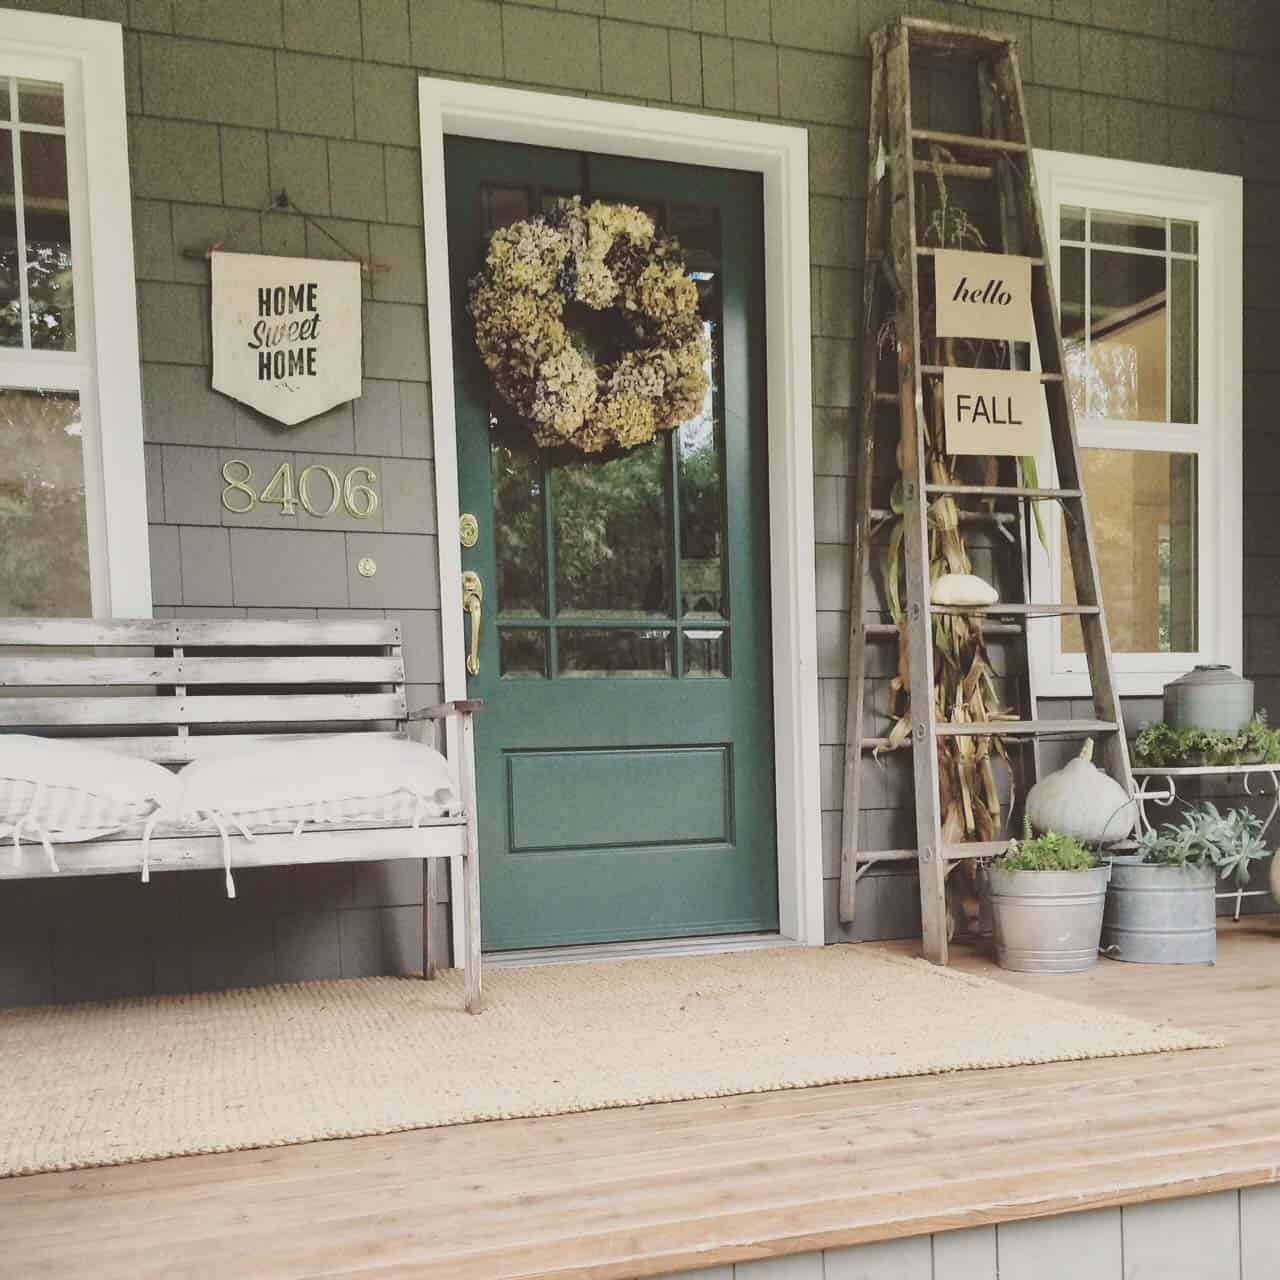 Front Porch Decorating: 46 Of The Coziest Ways To Decorate Your Outdoor Spaces For